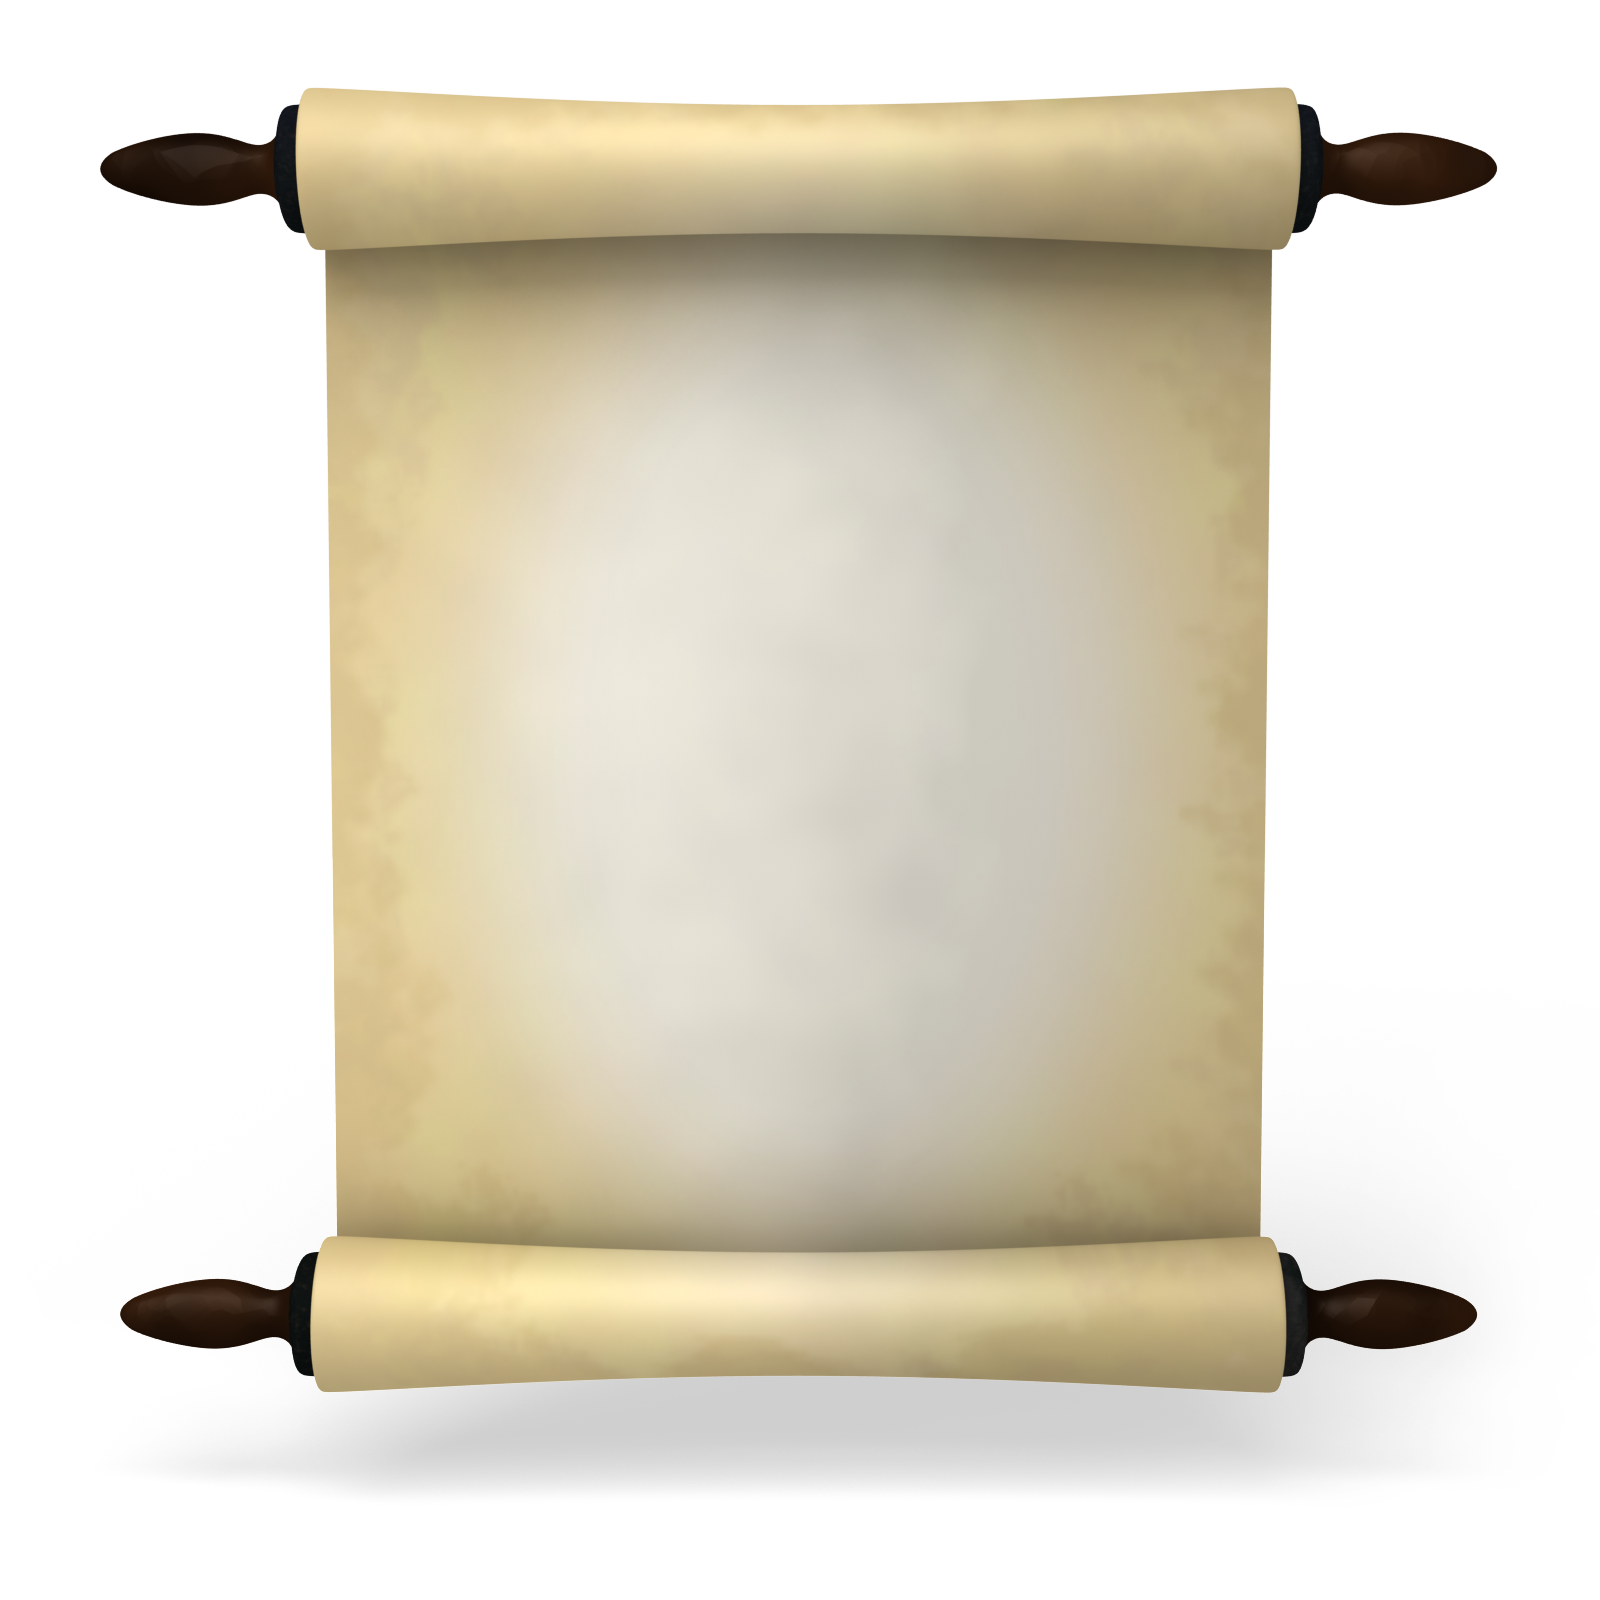 Scroll border free download. Paper clipart treaty